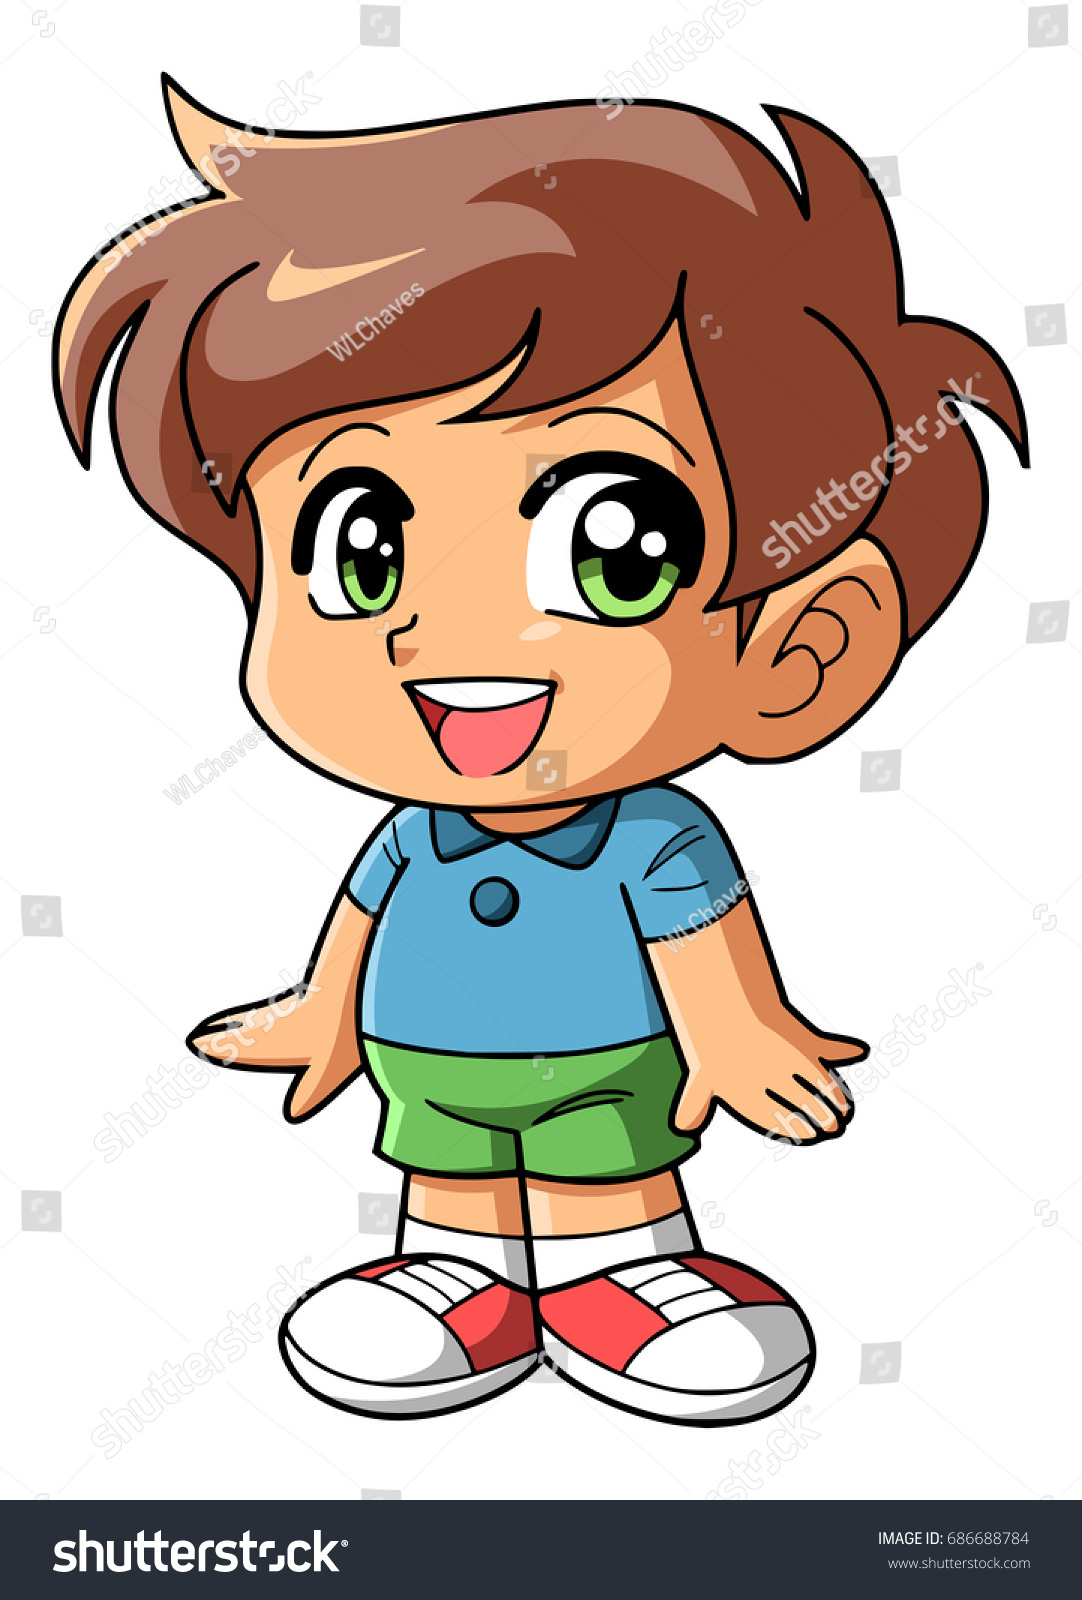 Anime chibi style colored image of a boy with brown hair and green eyes wearing